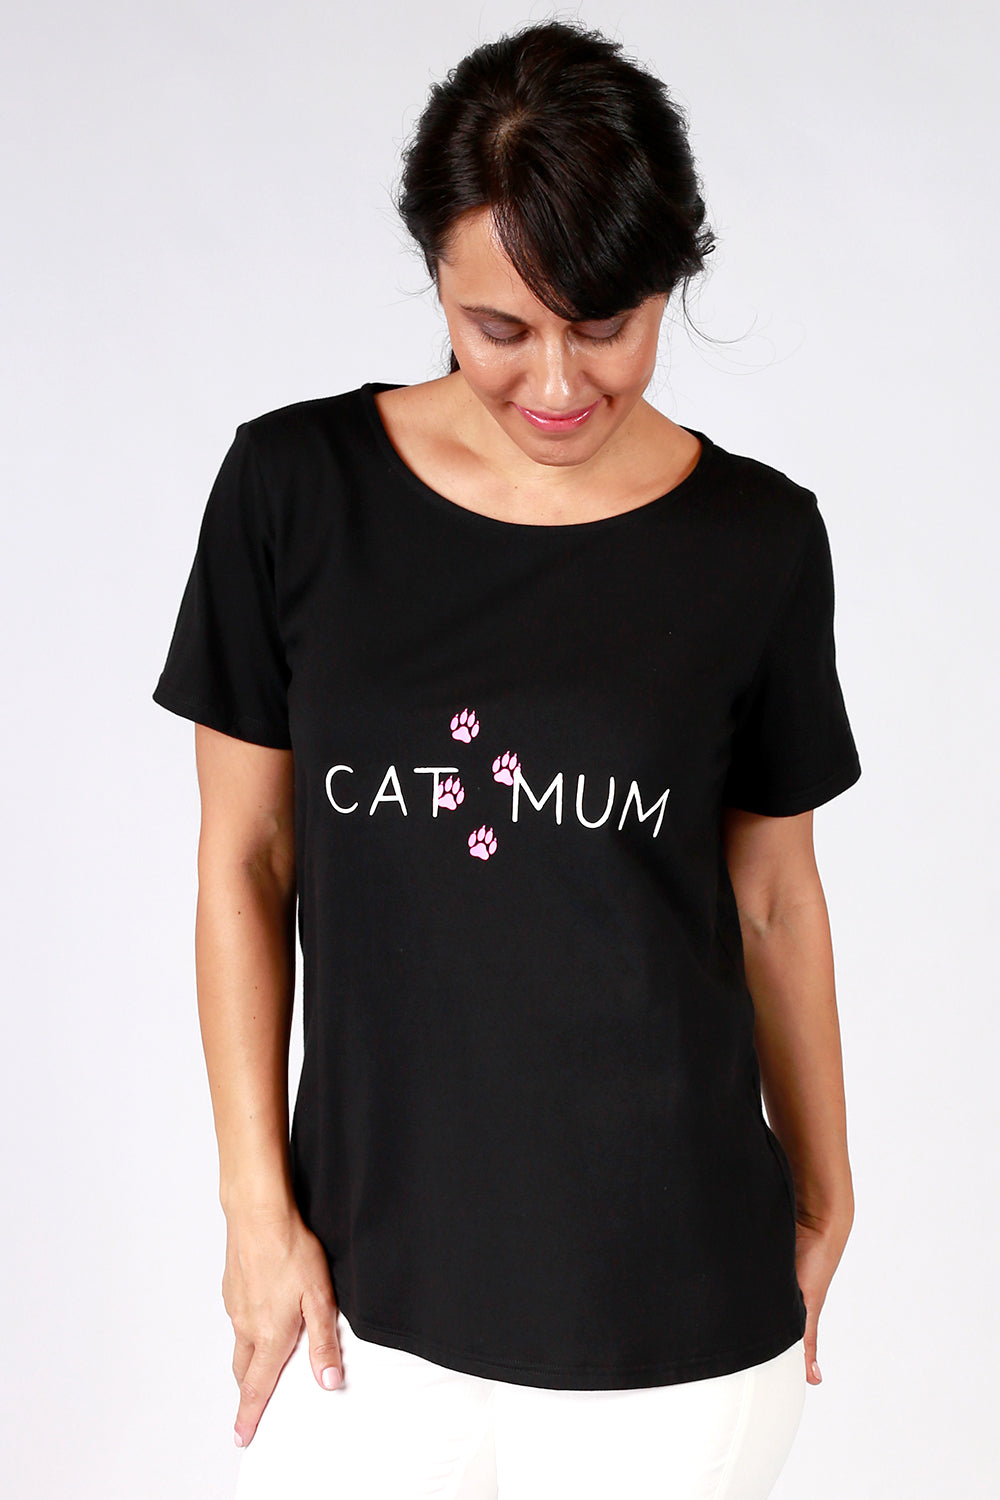 The Cat Mum Tee